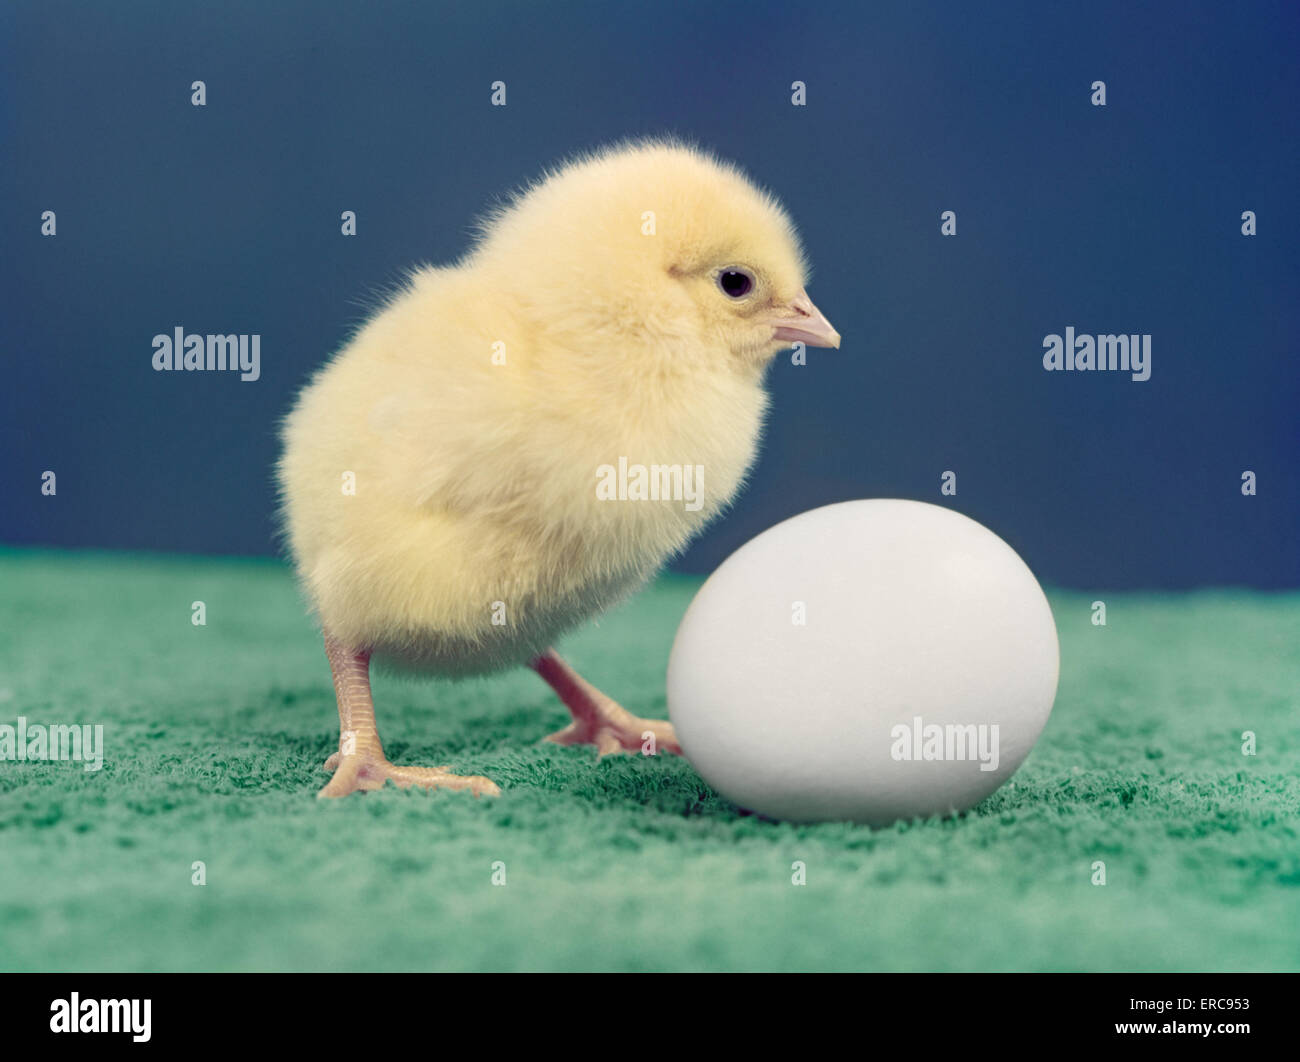 1950s BABY CHICK AND EGG - Stock Image